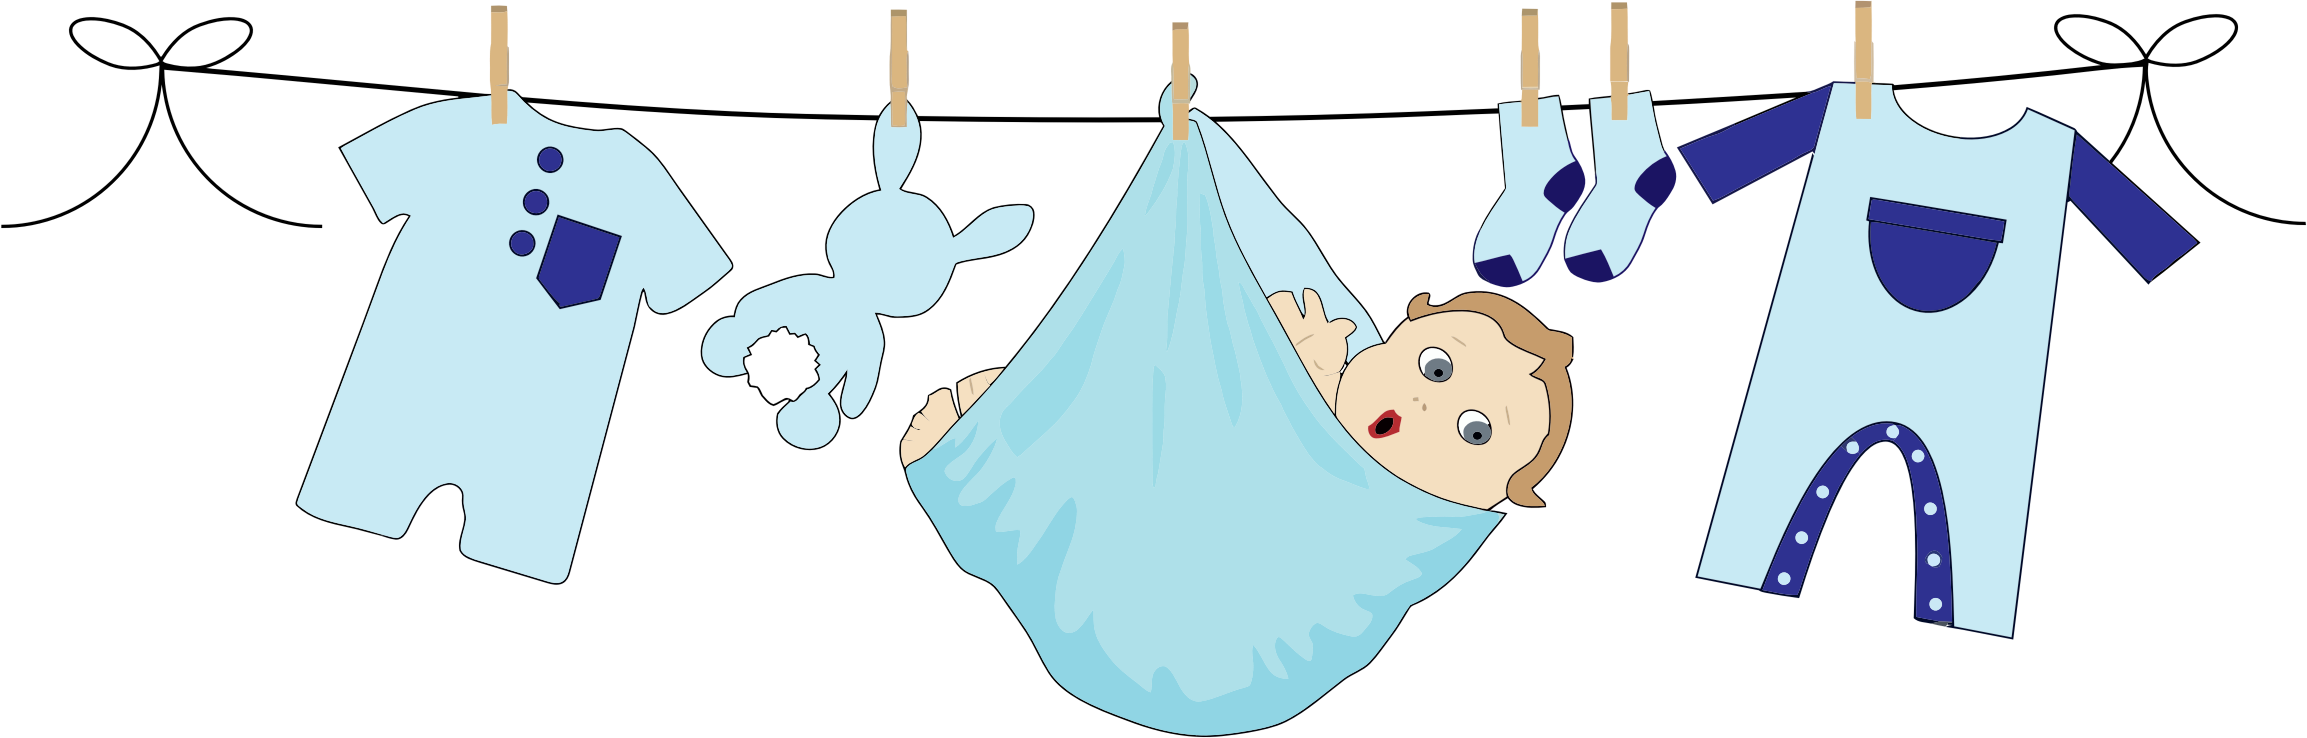 Baby boy clipart png. Collection of high